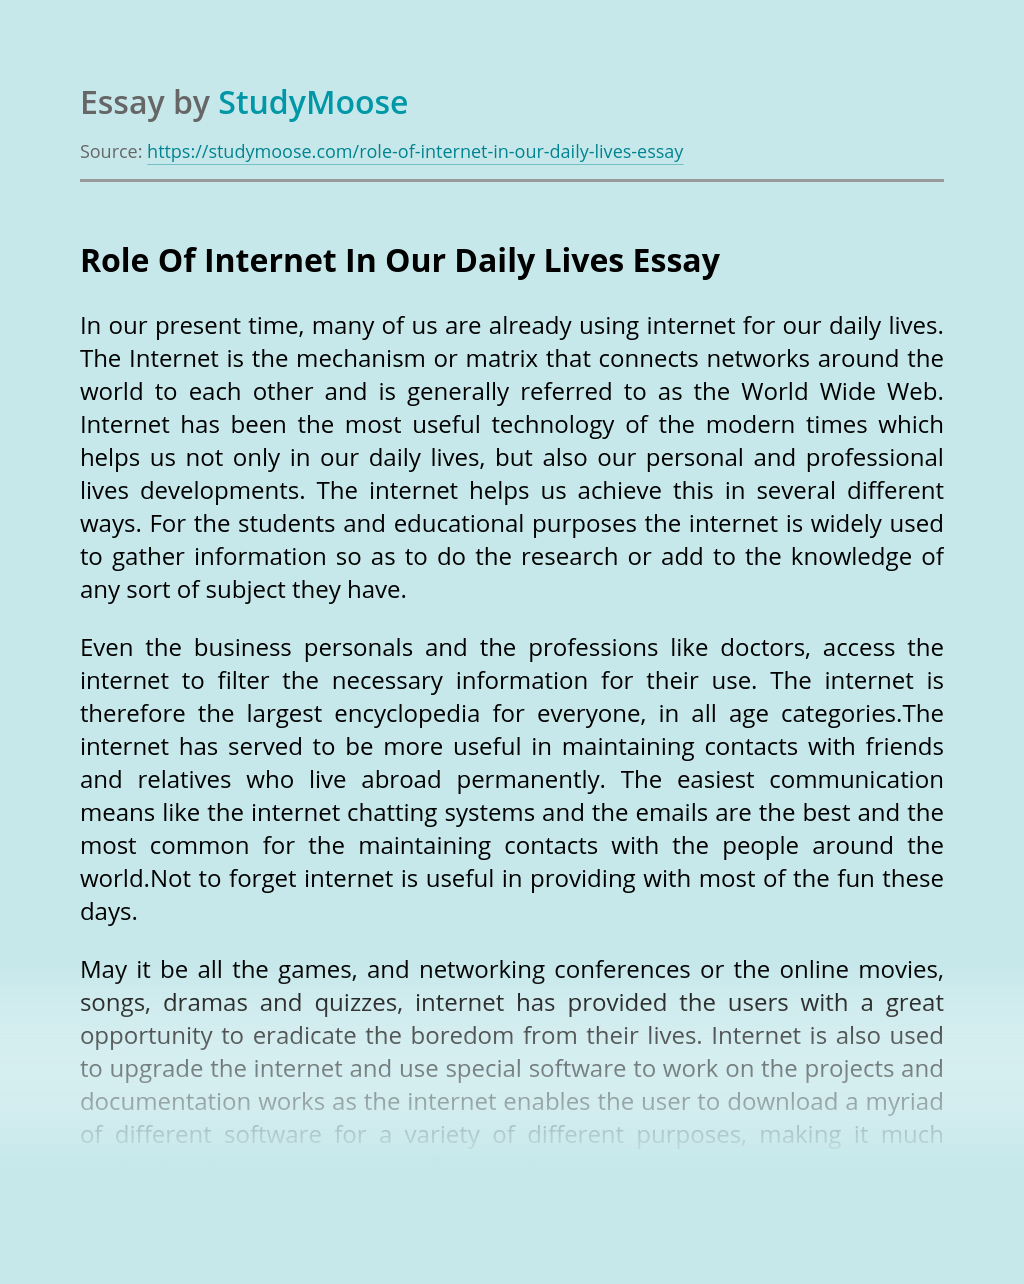 Role Of Internet In Our Daily Lives